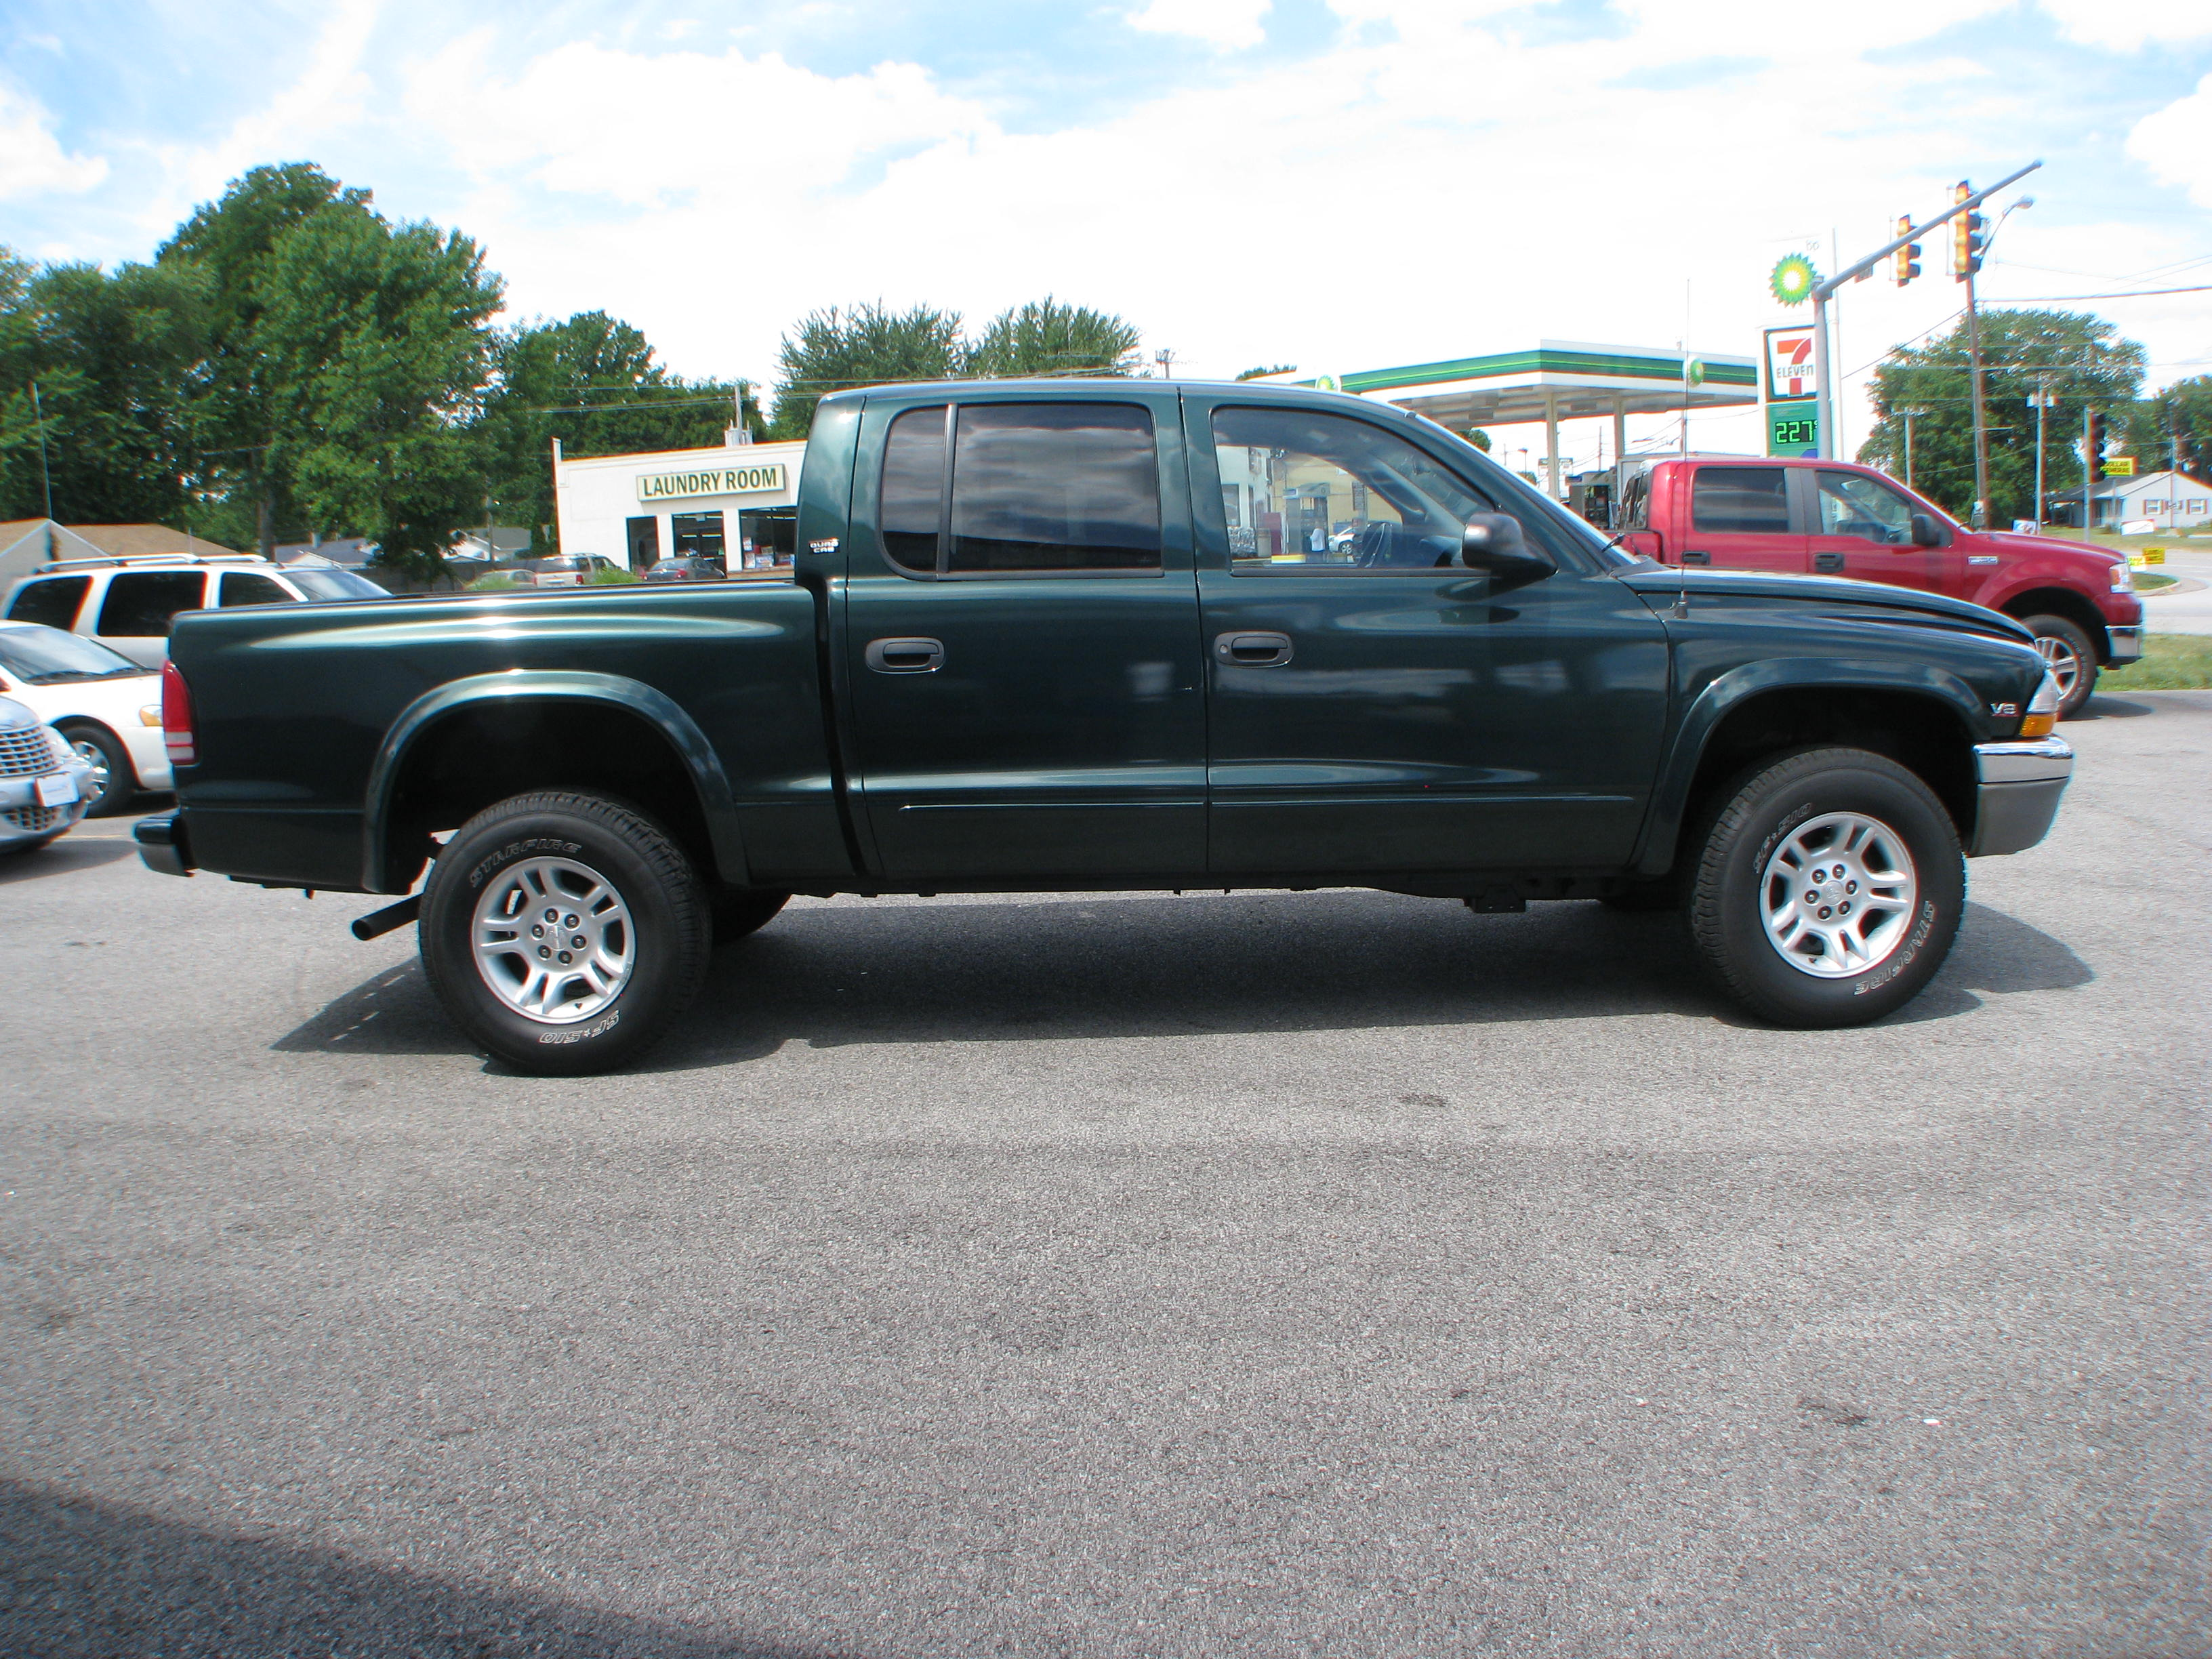 pre owned 2001 dodge dakota 4wd quad cab slt in coal. Black Bedroom Furniture Sets. Home Design Ideas